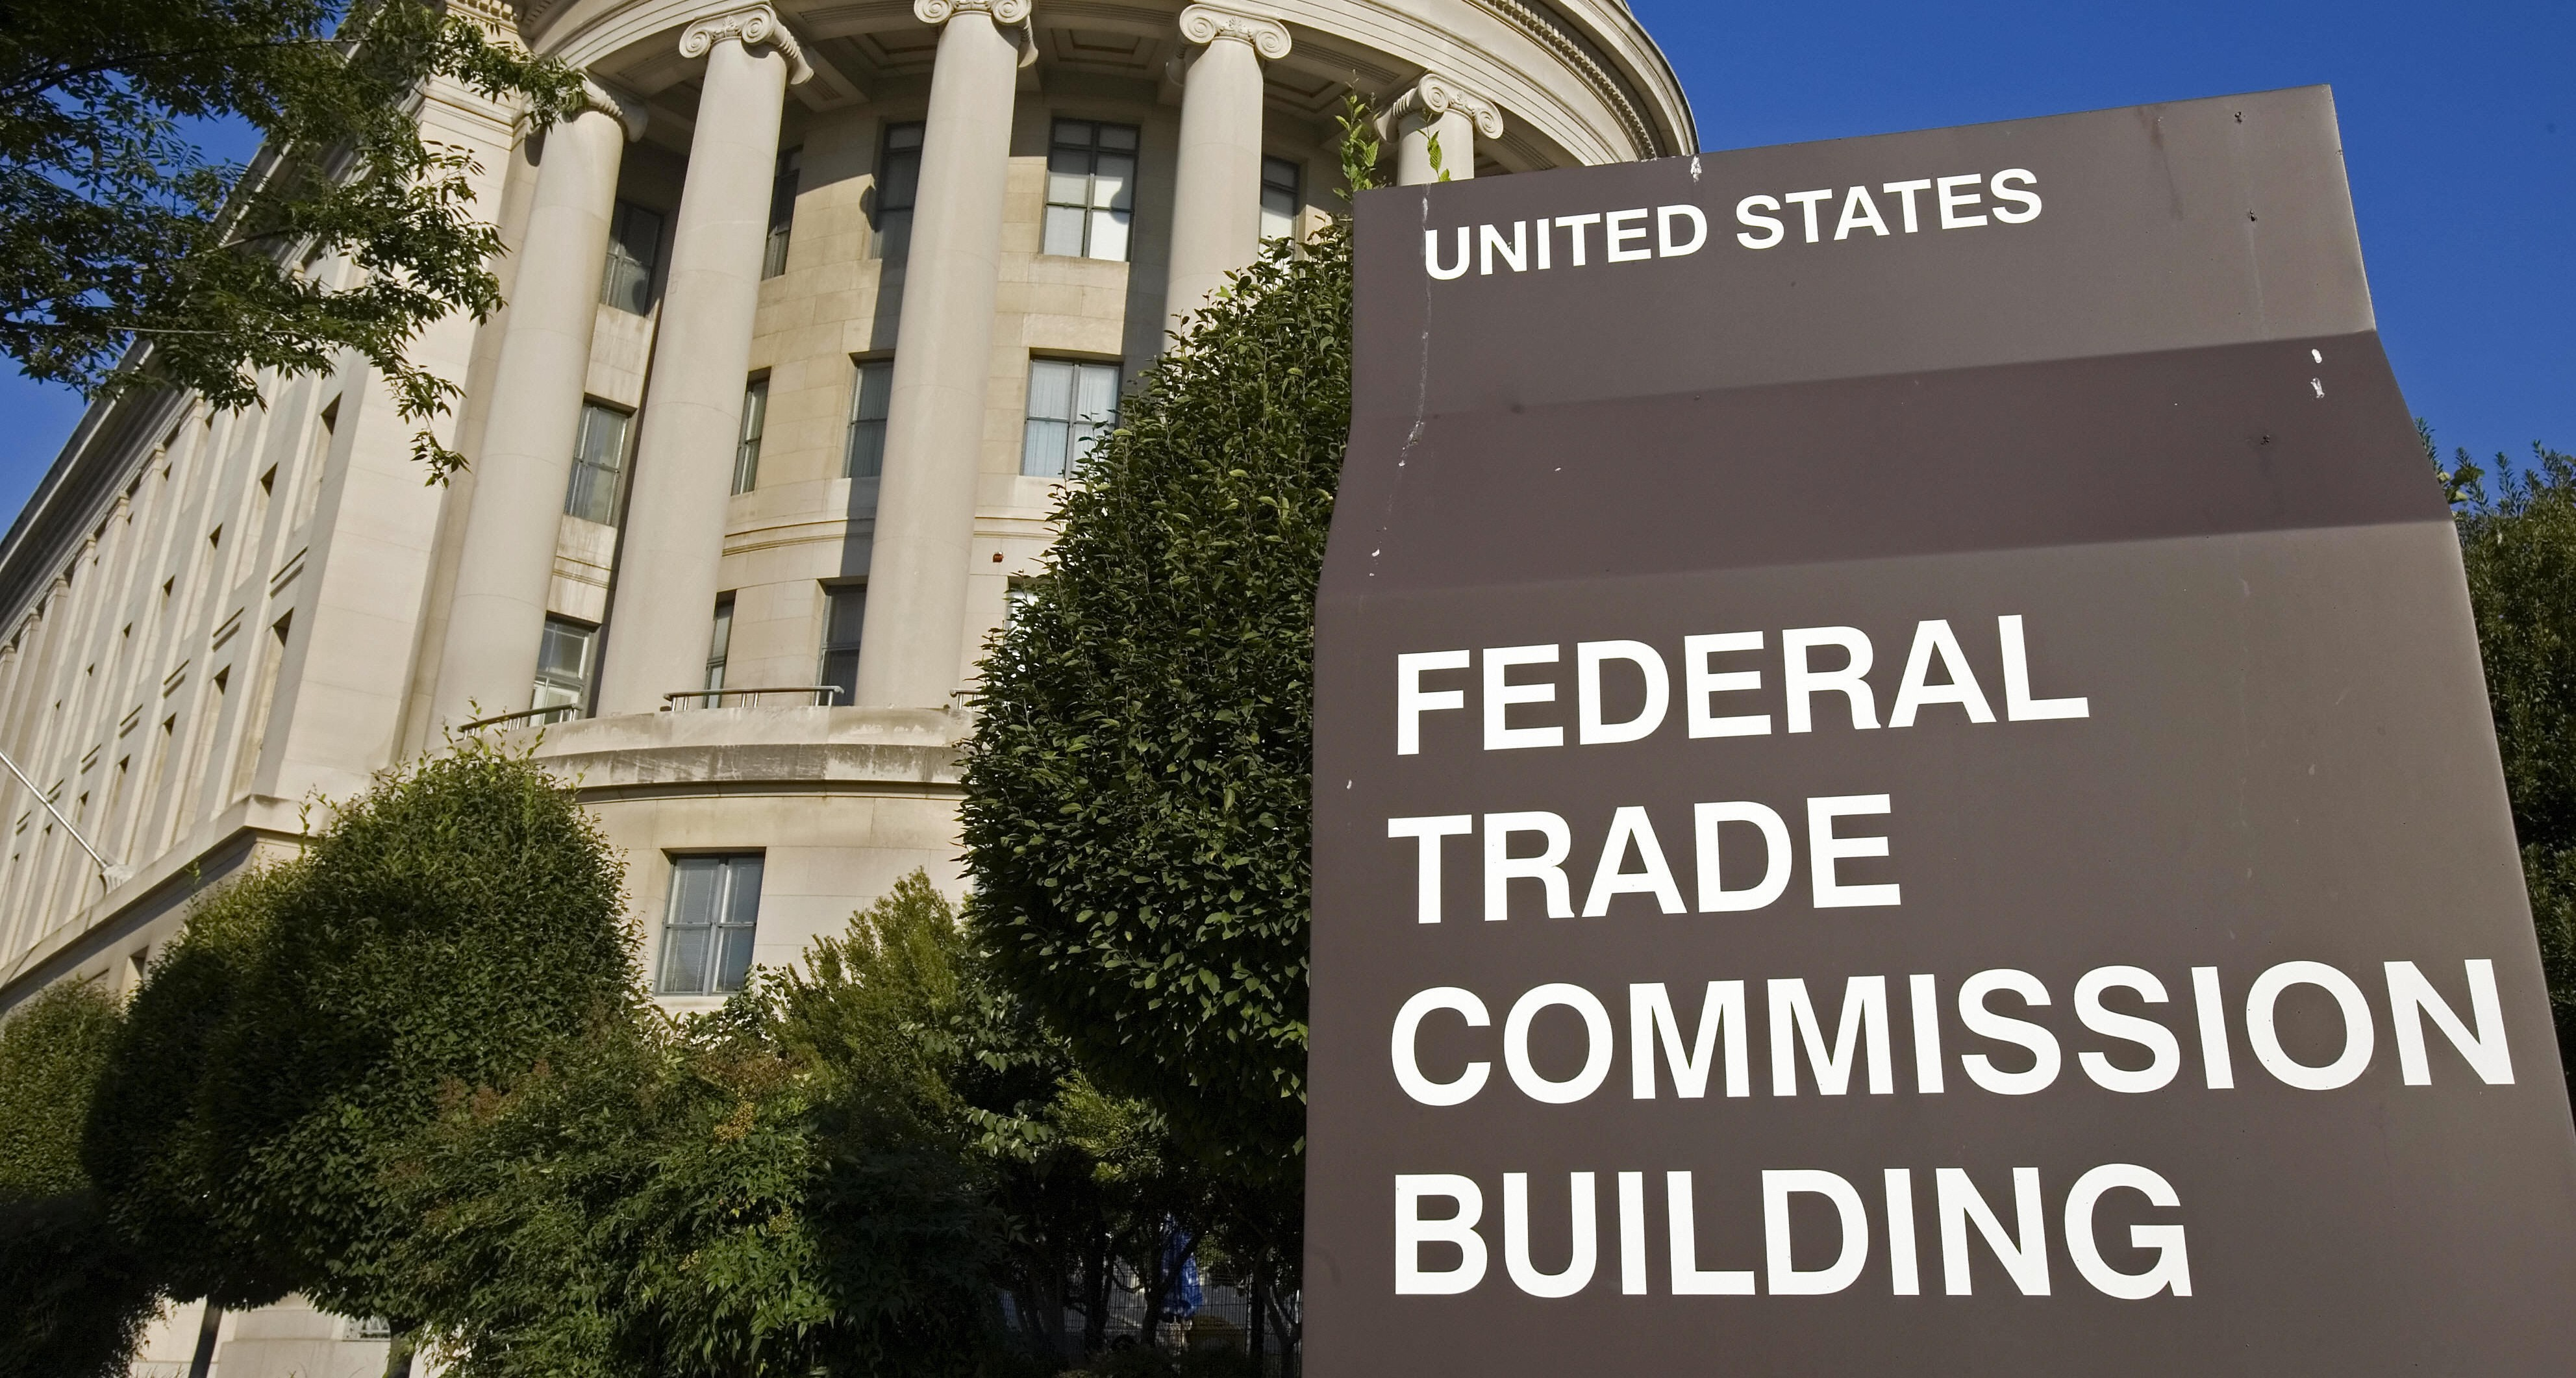 The US Federal Trade Commission (FTC) bu